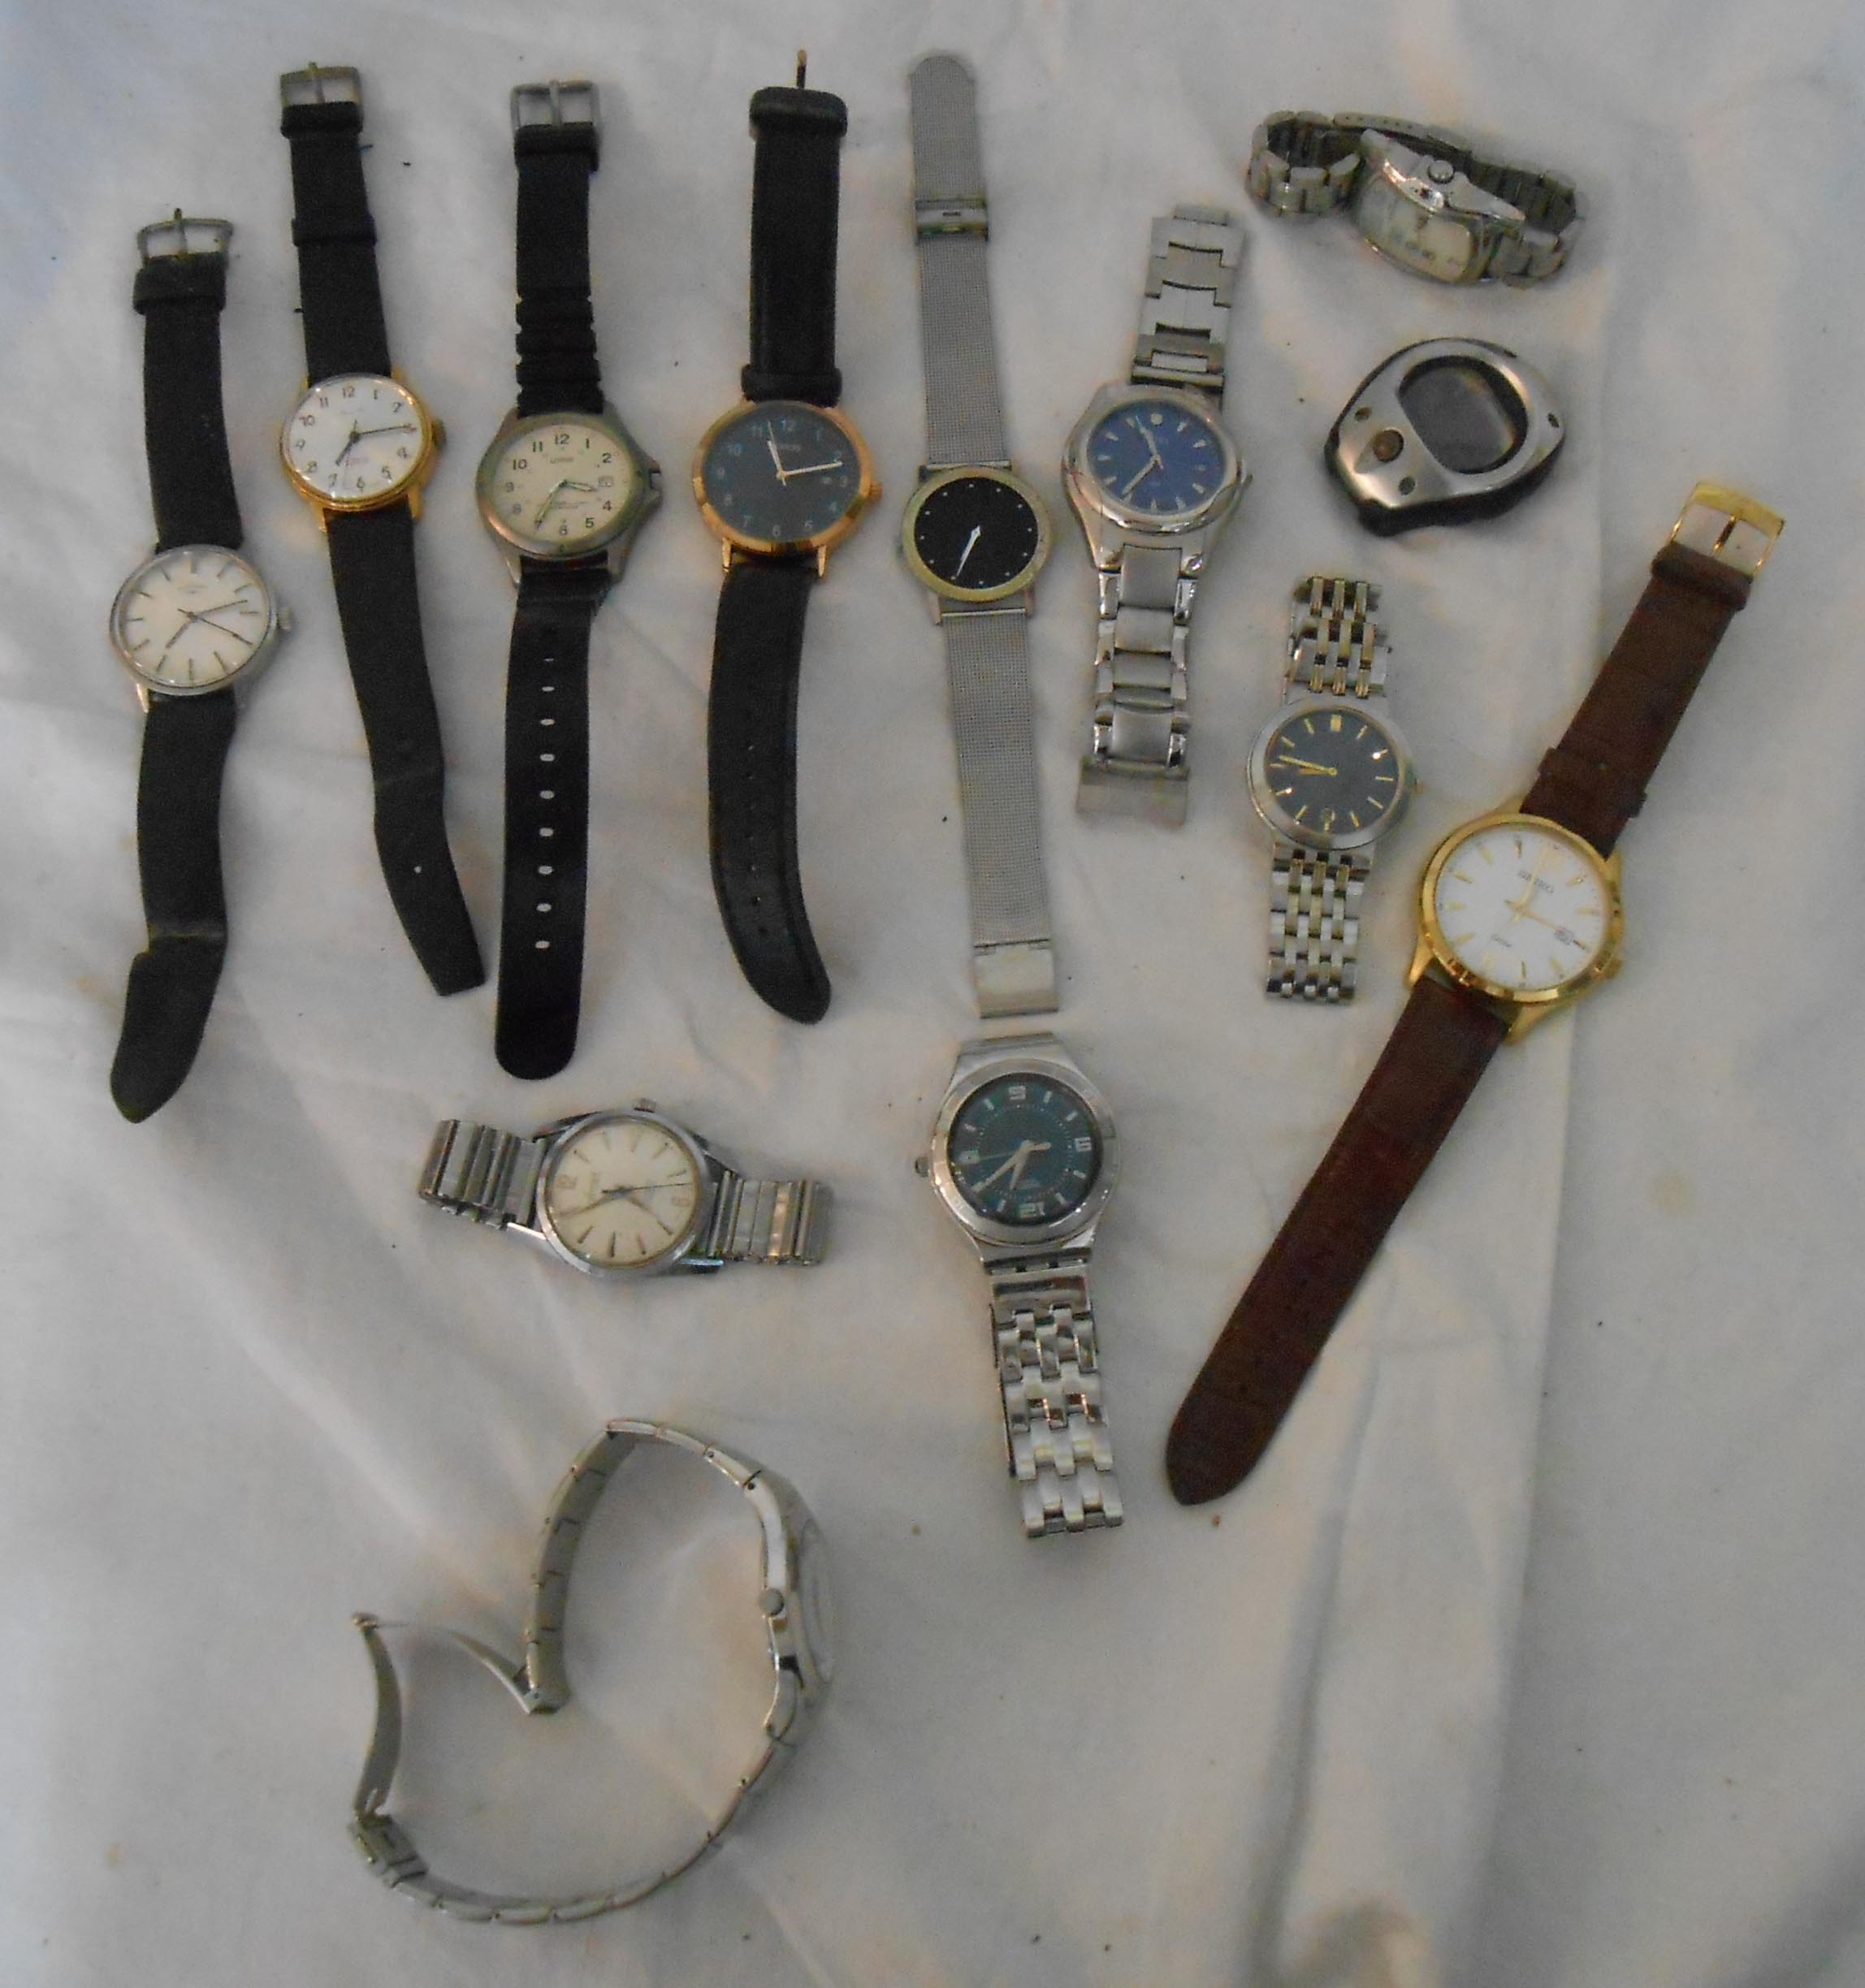 A bag containing a collection of assorted gentlemans' wristwatches - various condition